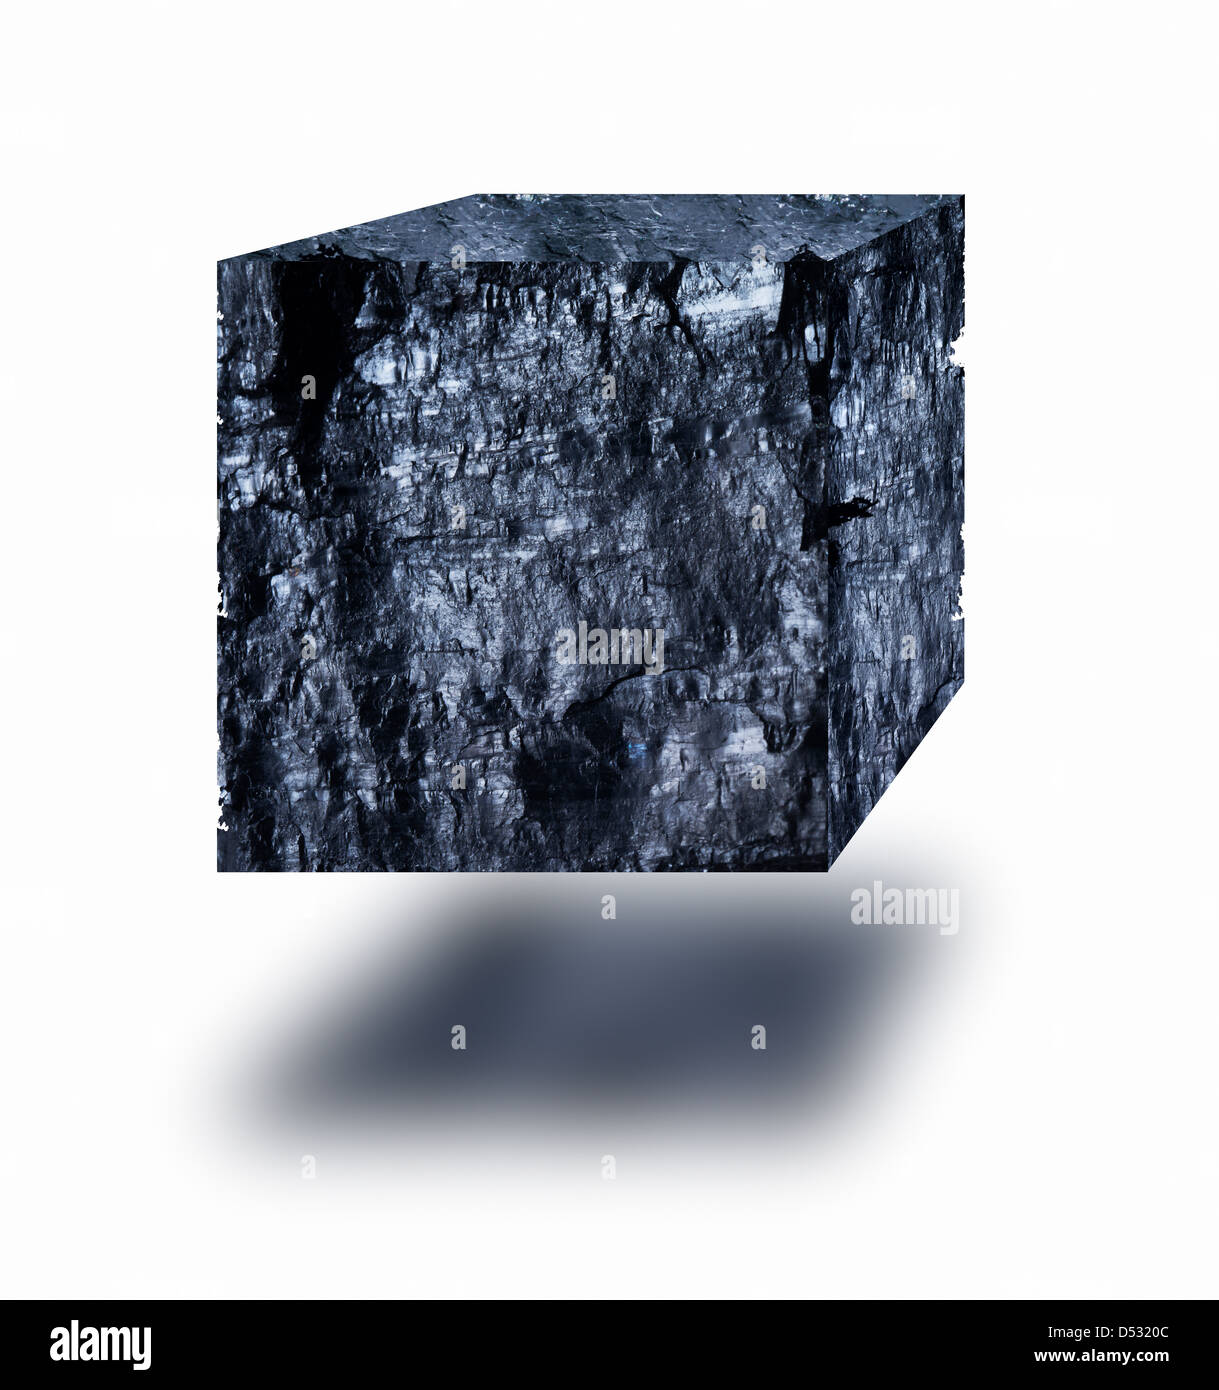 Graphite cube floating in air over white background - Stock Image